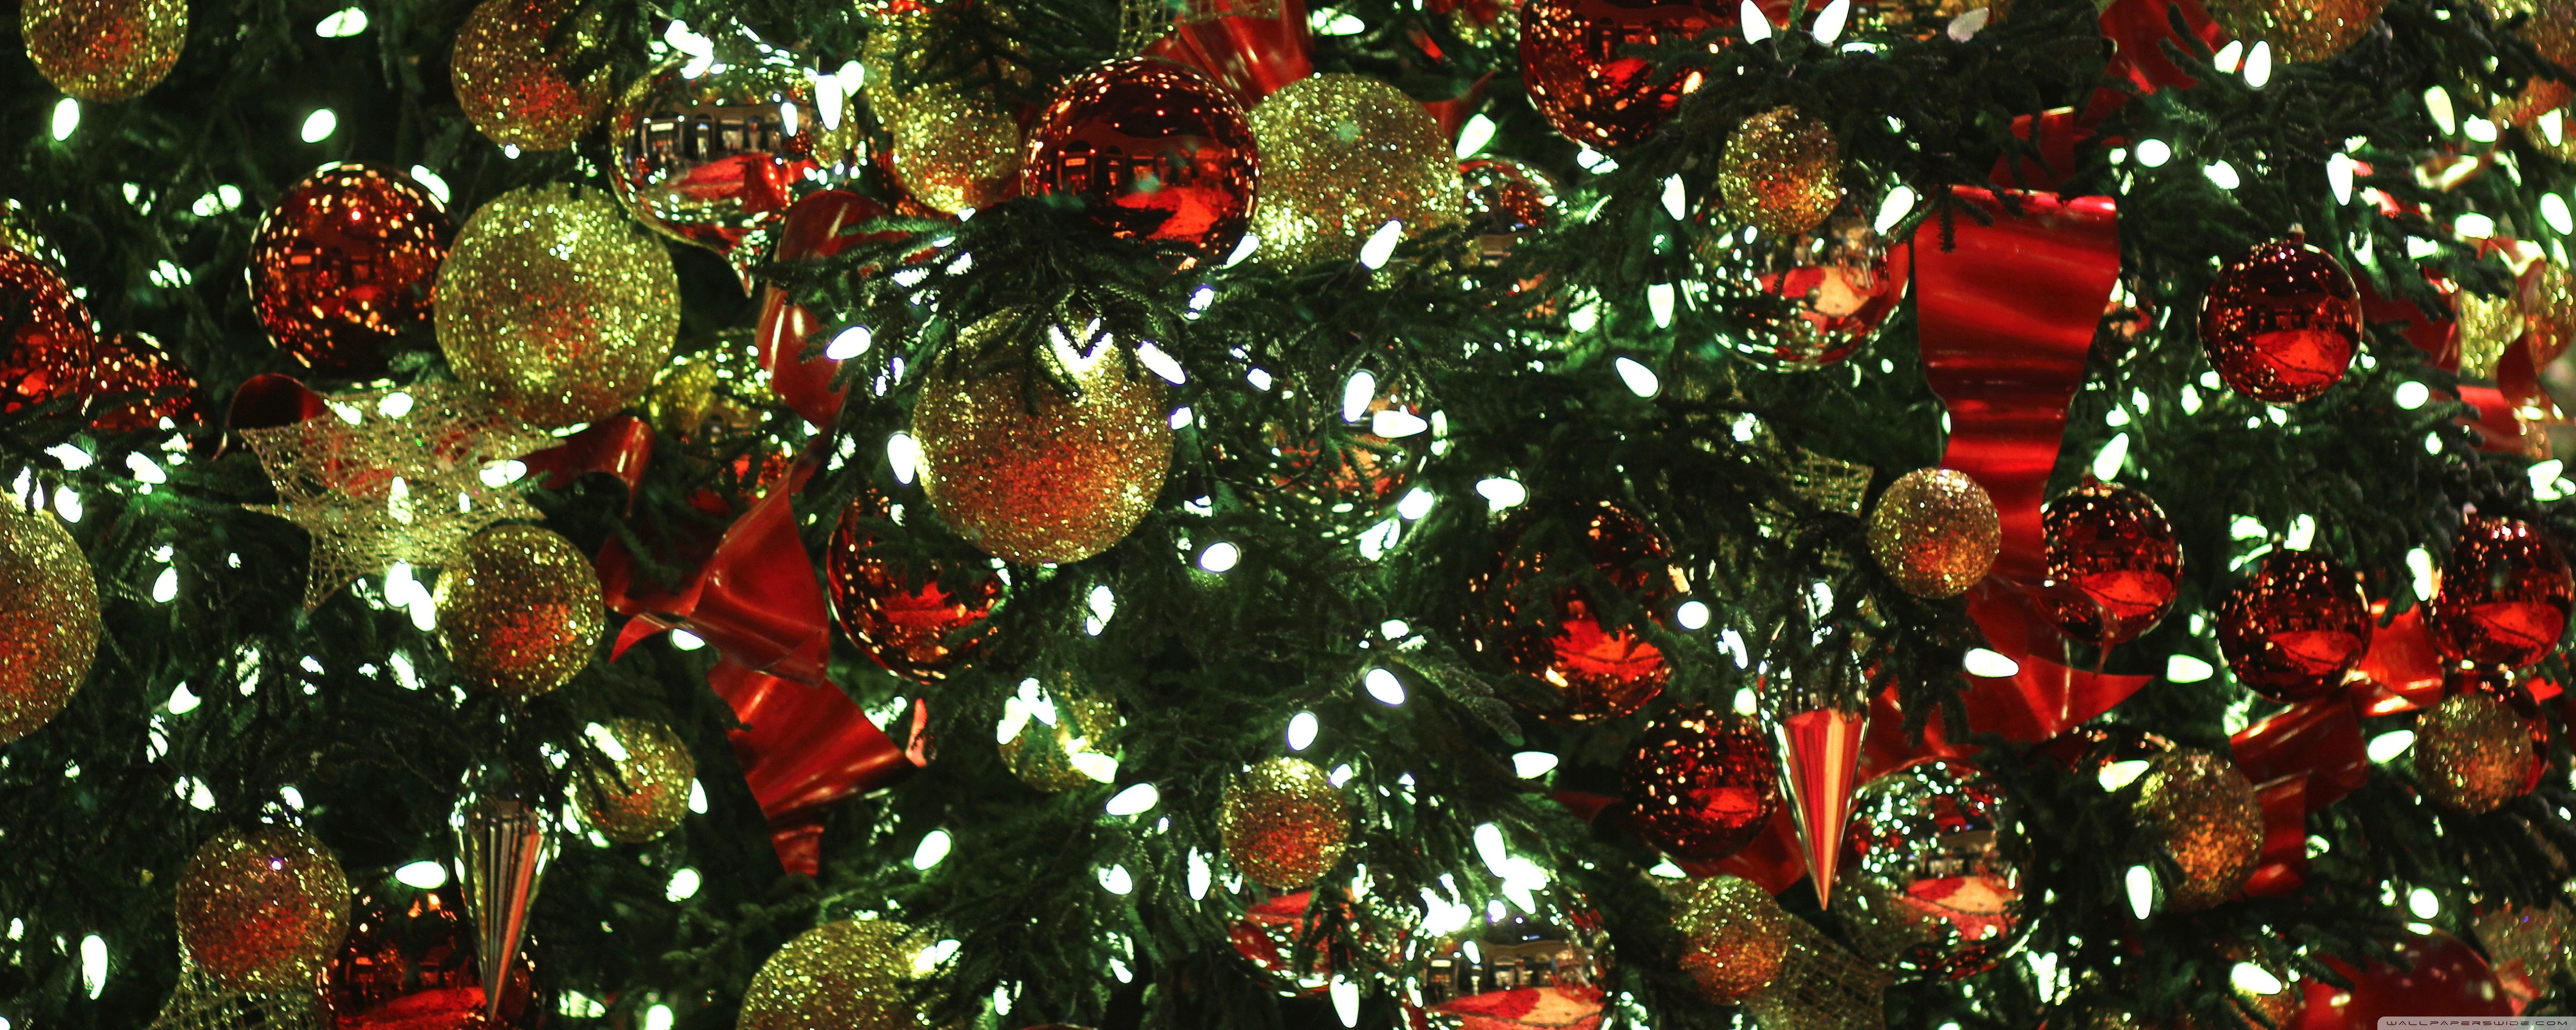 ballagio christmas hd desktop wallpaper : widescreen : high